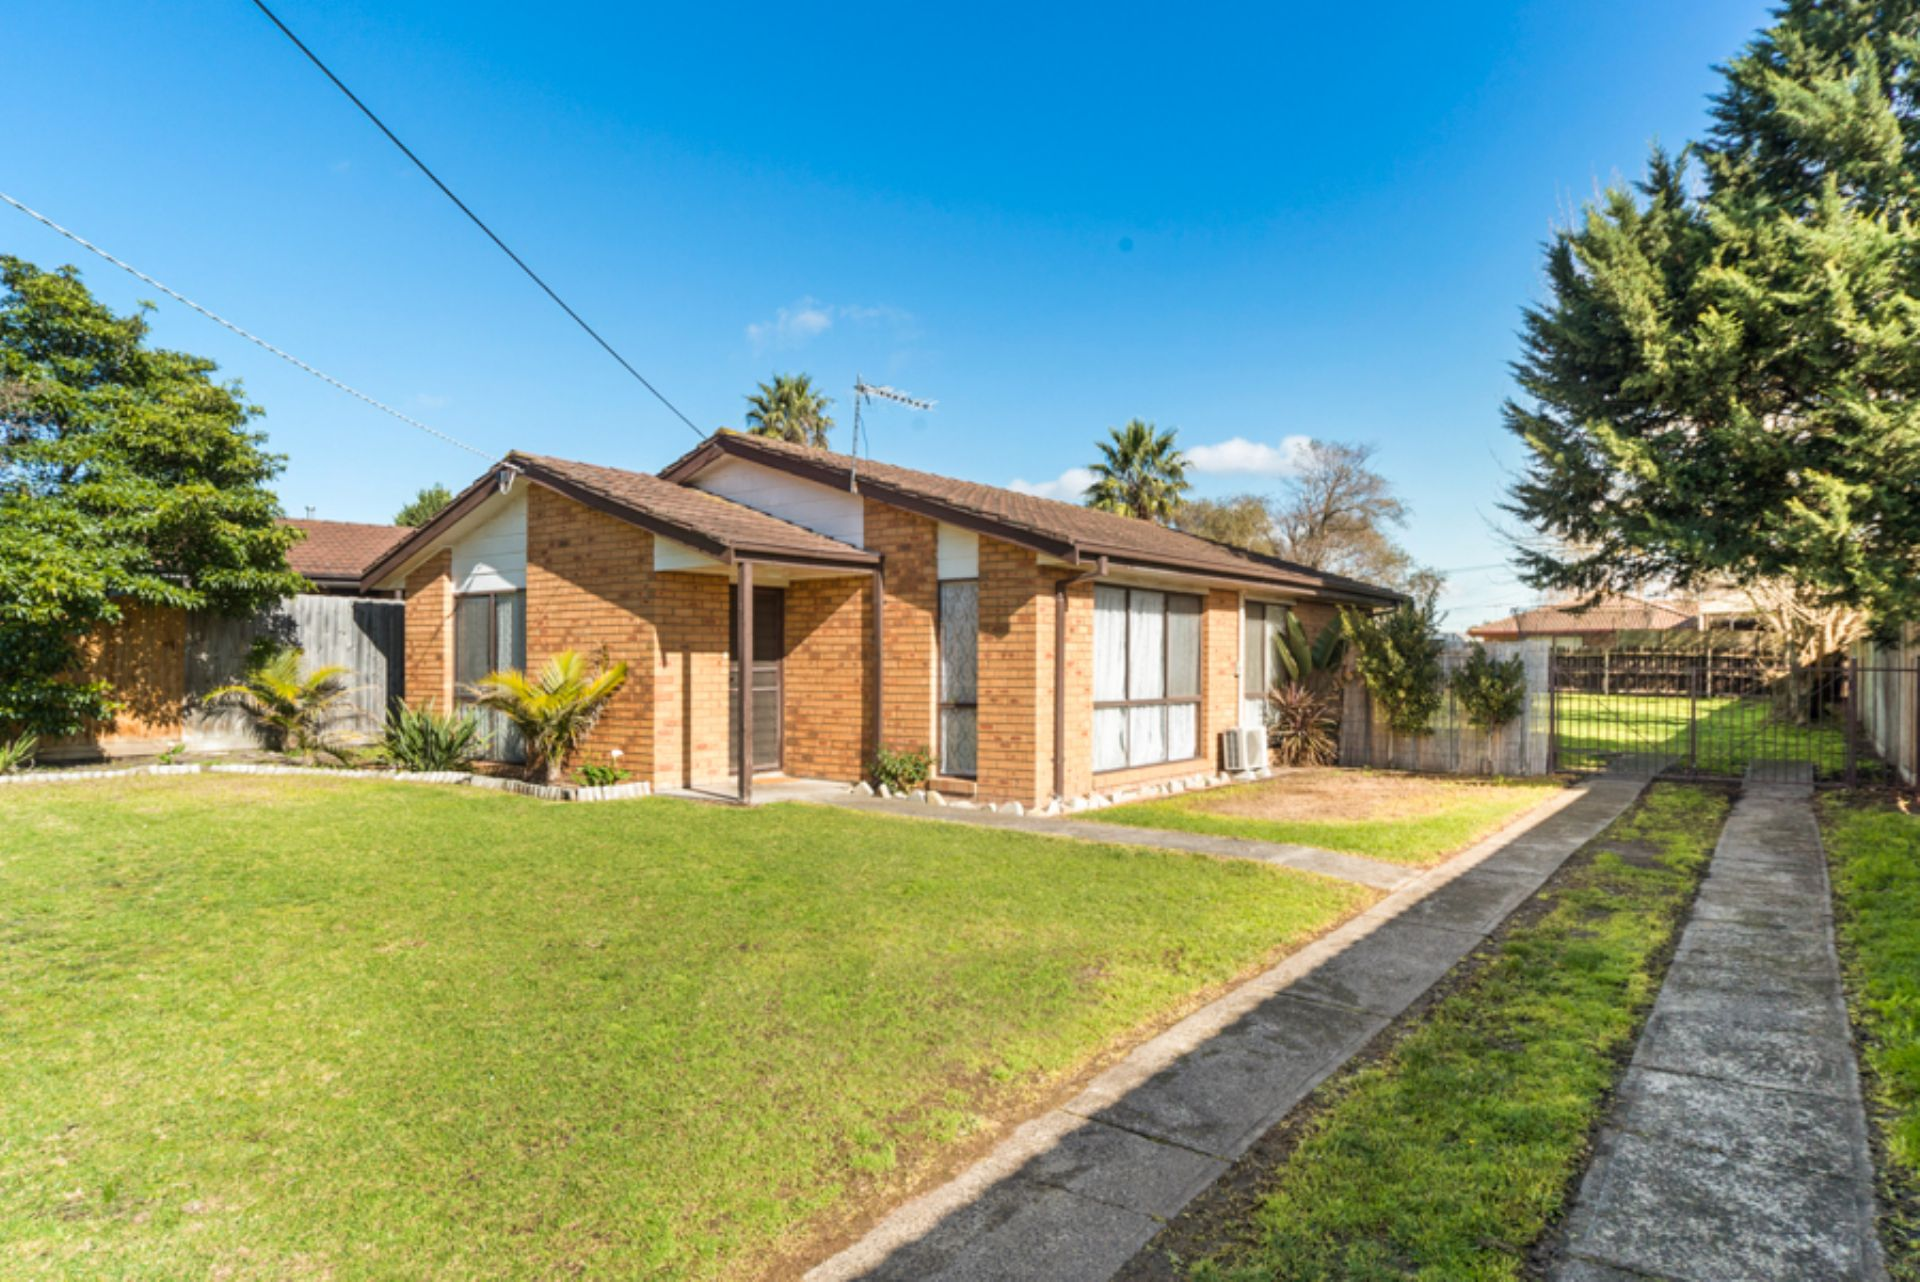 27 Dion Drive, CARRUM DOWNS, VIC, 3201 - Image